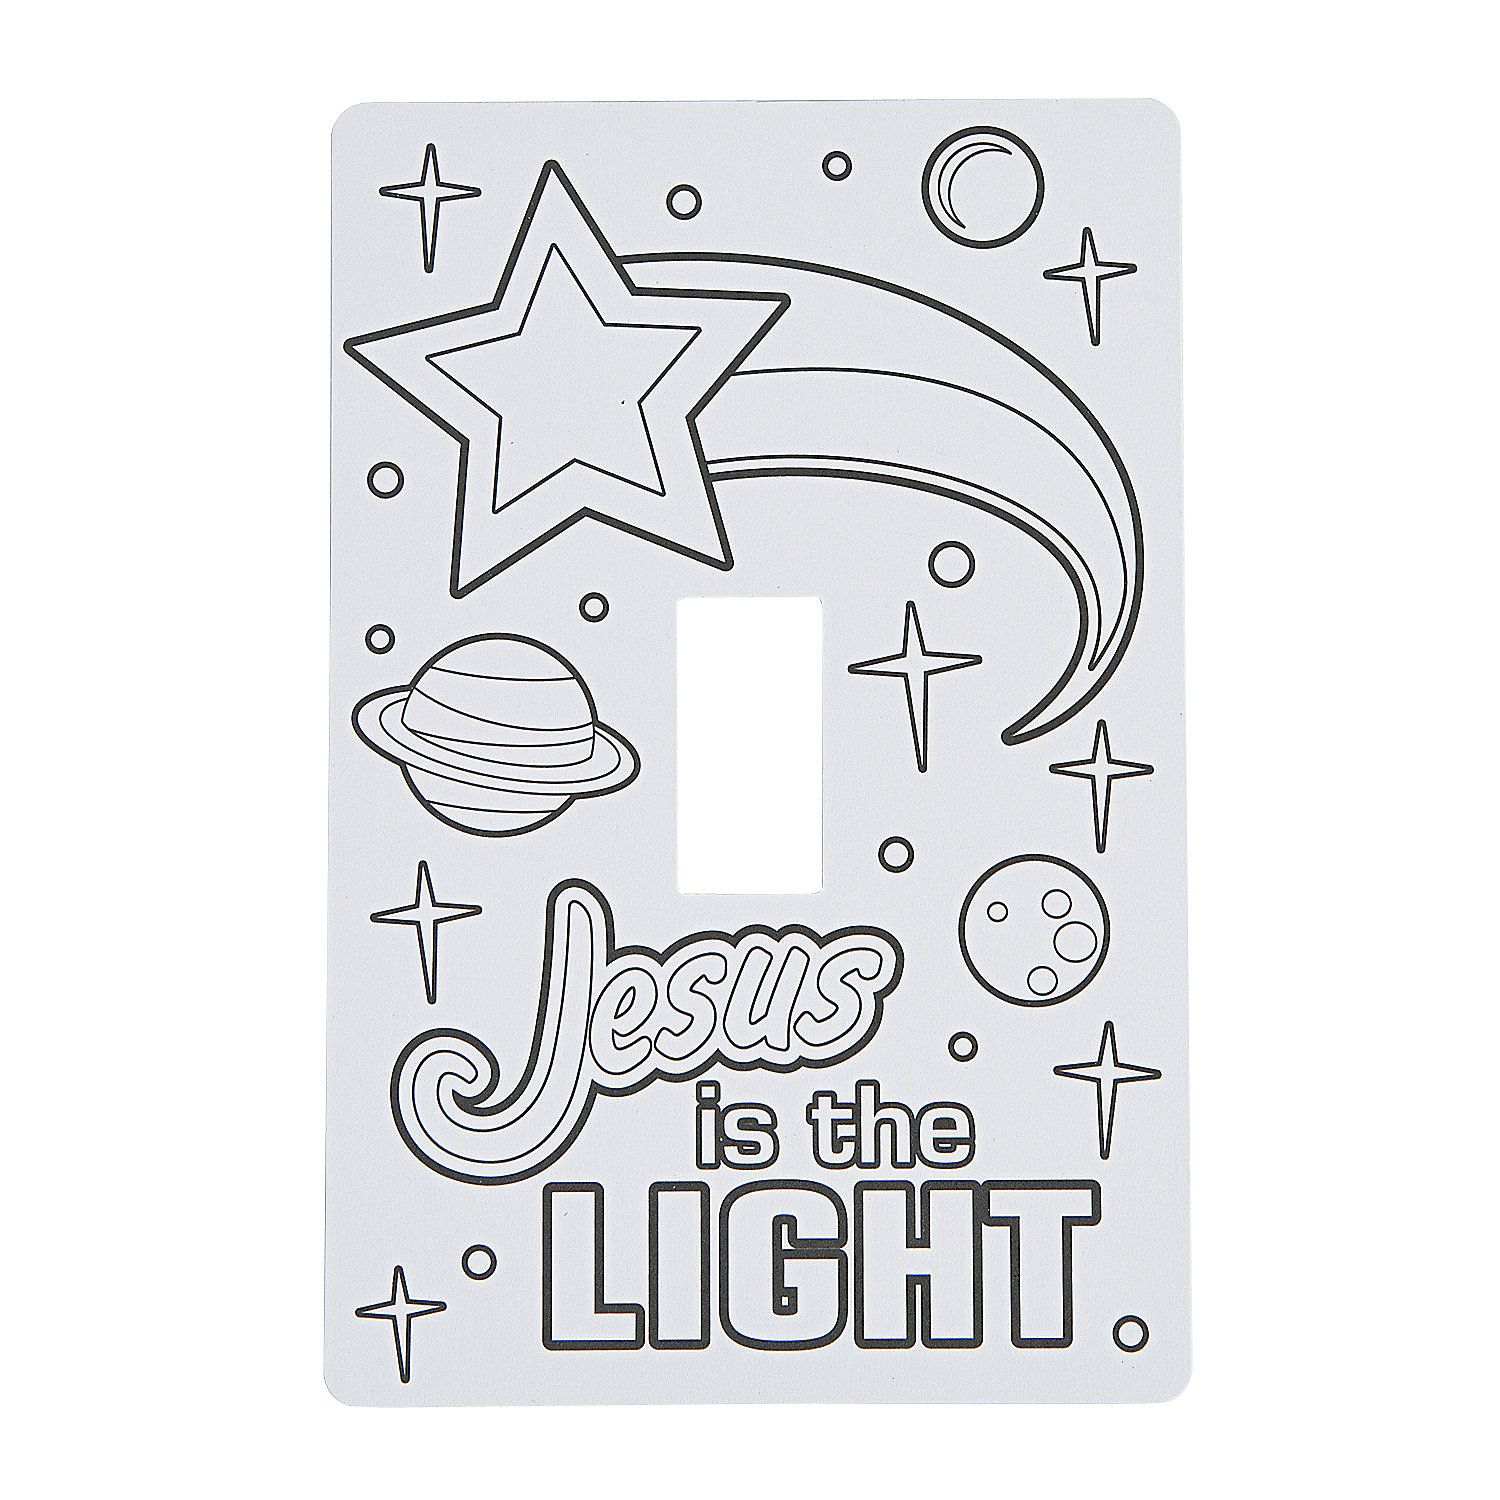 47+ Light switch off clipart black and white information